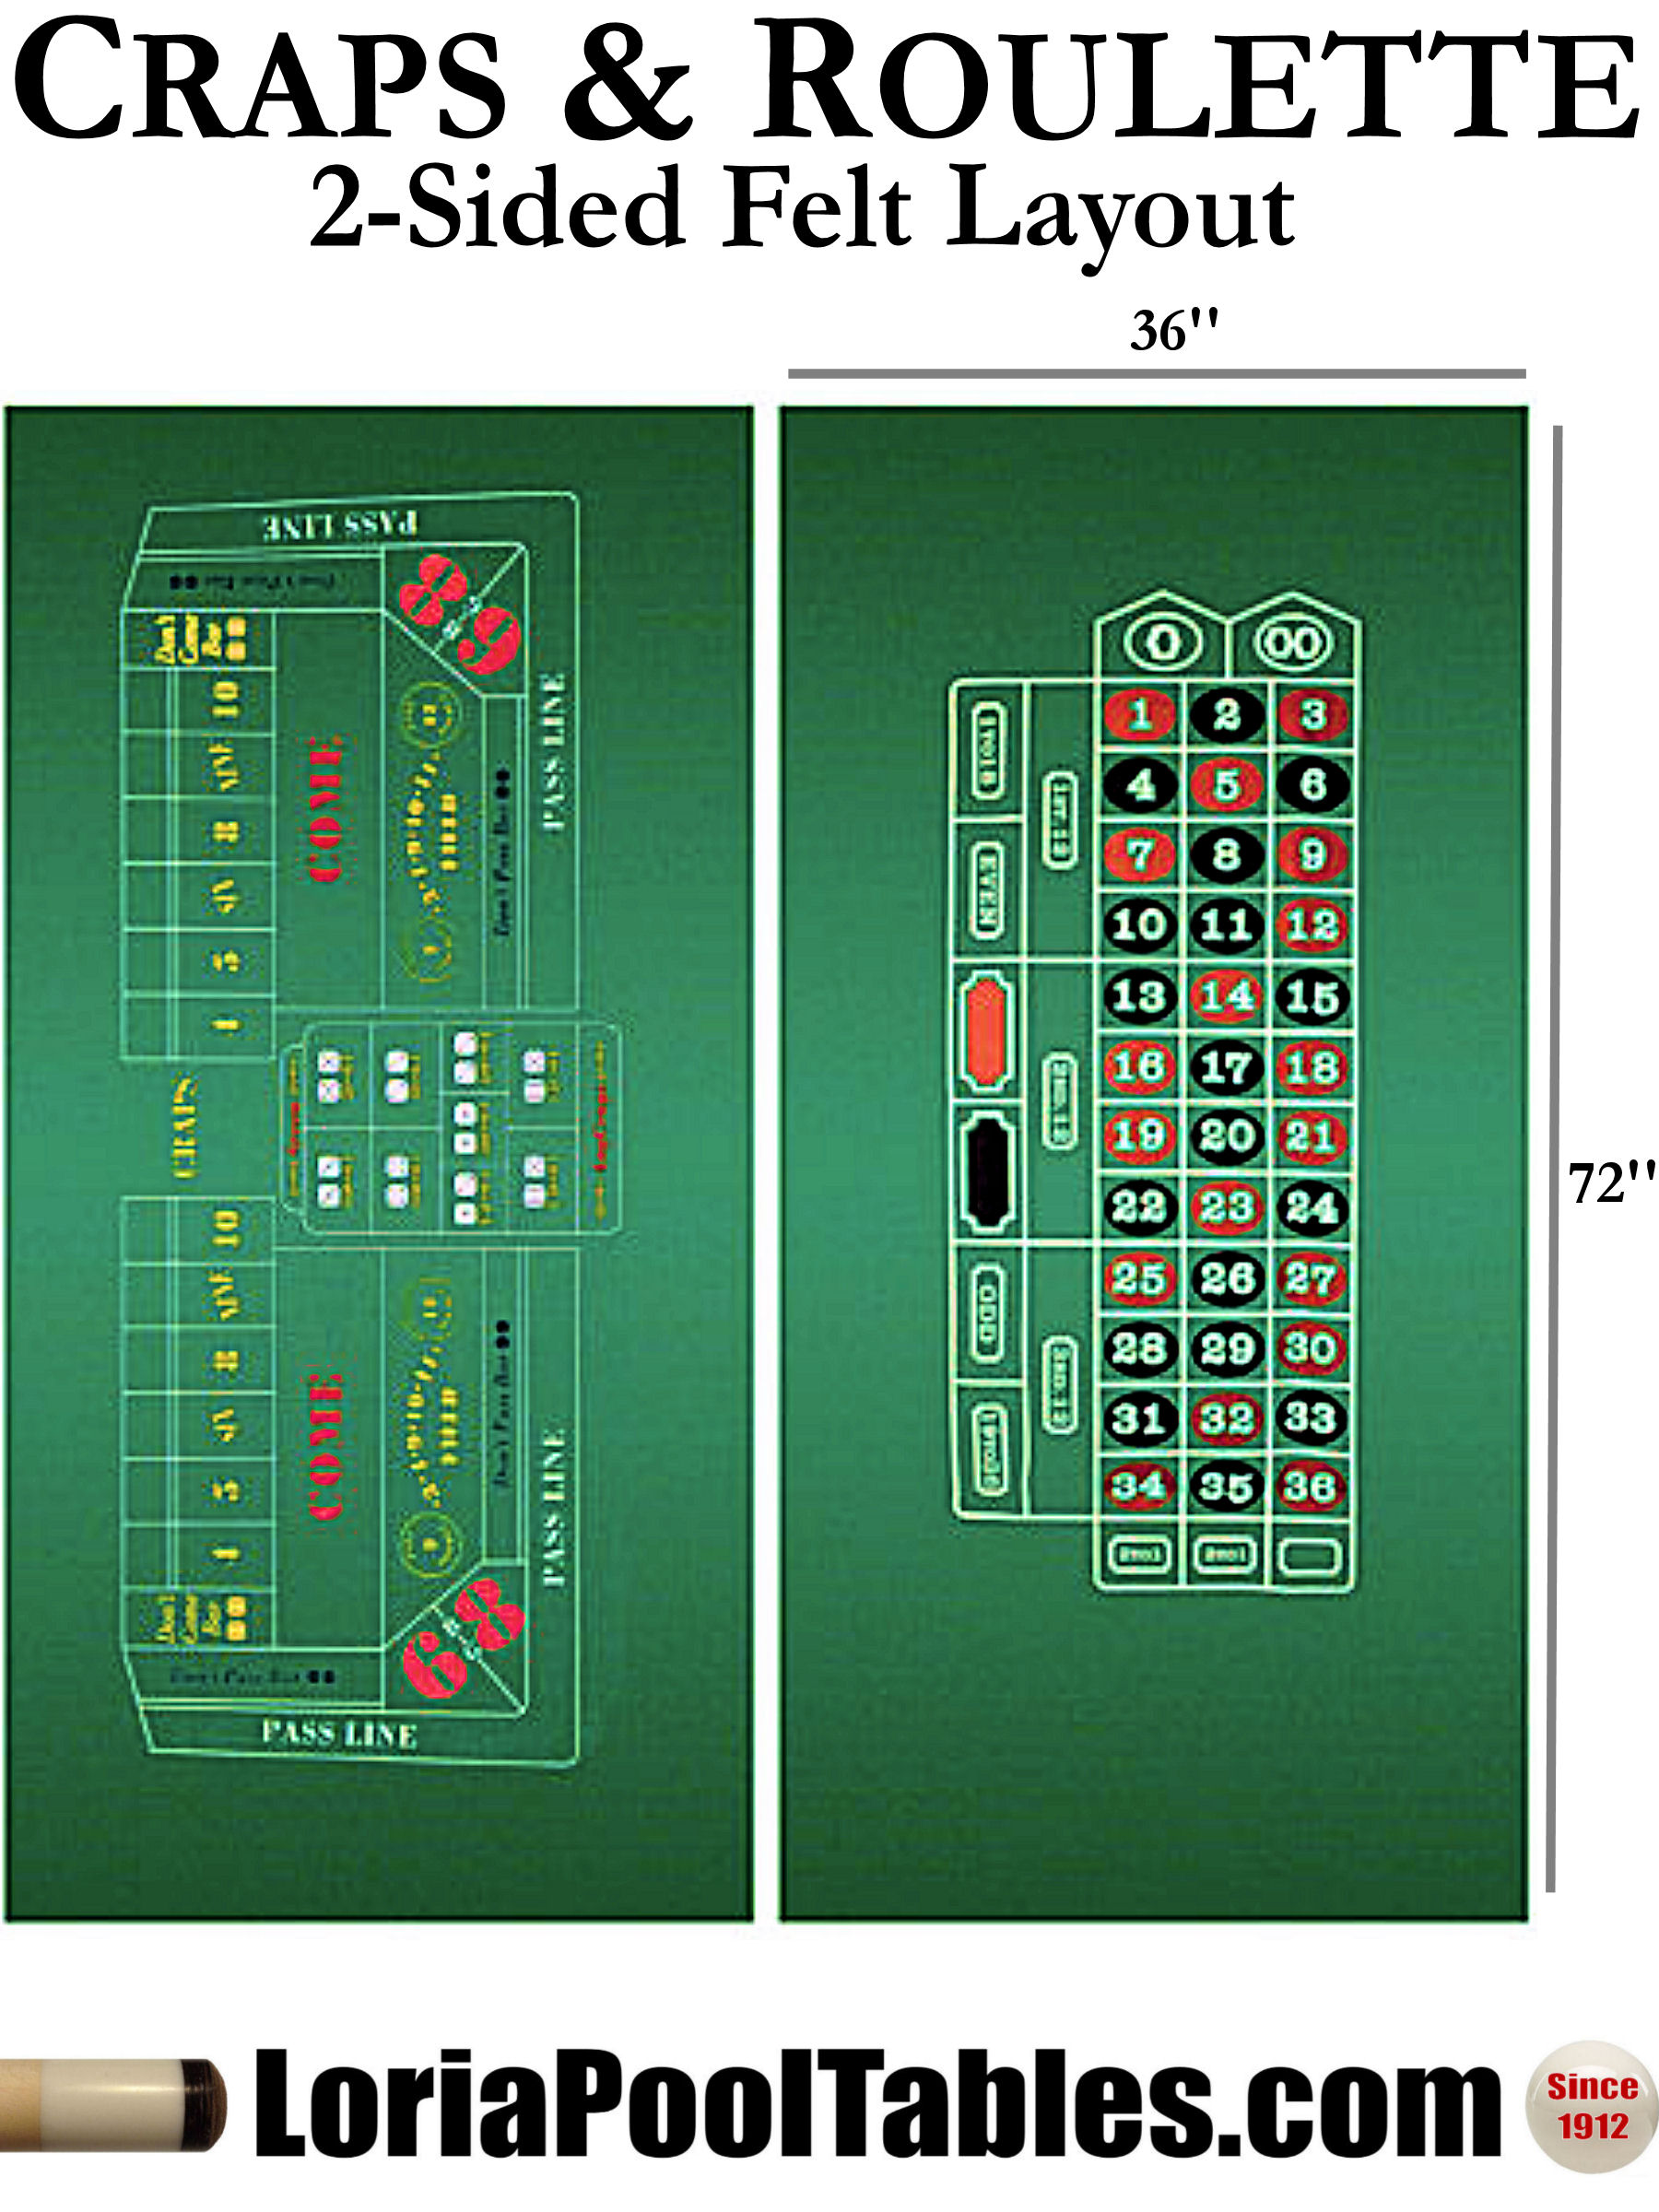 Craps Amp Roulette 2 Sided 36 Quot X 72 Quot Felt Layout Loria Awards